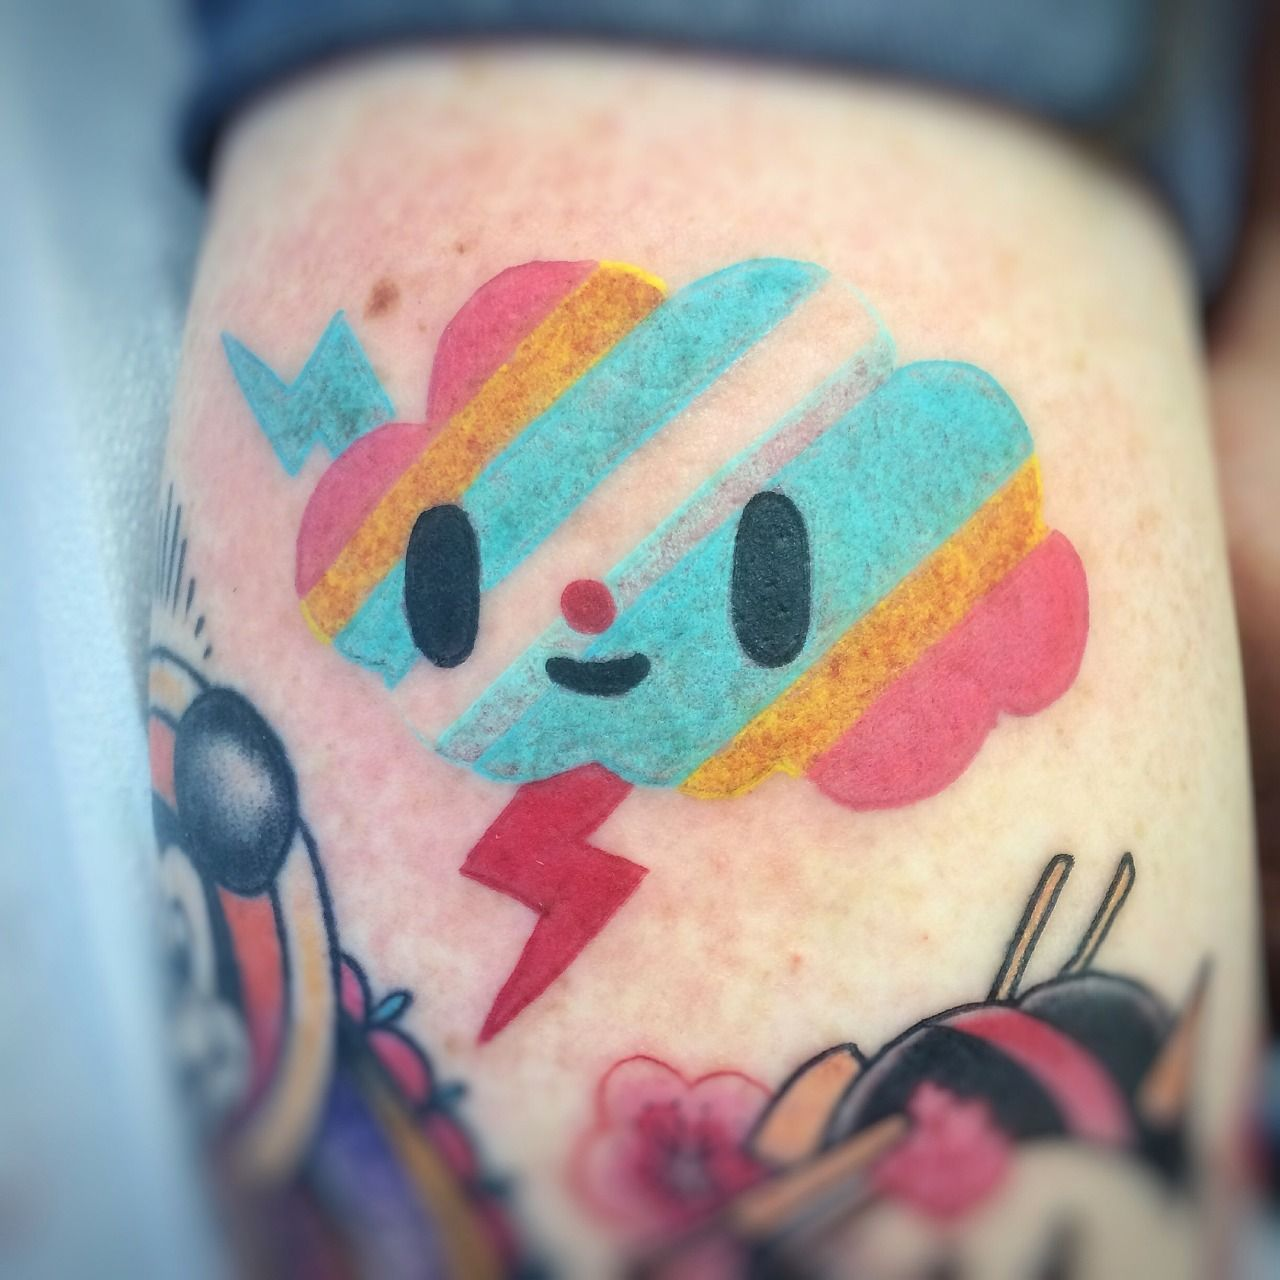 Tokidoki Thunder Cloud By Candice Bauman At Autumn Moon Tattoo In Anaheim Ca Ig Candeeo Goldenbough Tumblr Com Thundercloud Cloud Tattoo Moon Tattoo